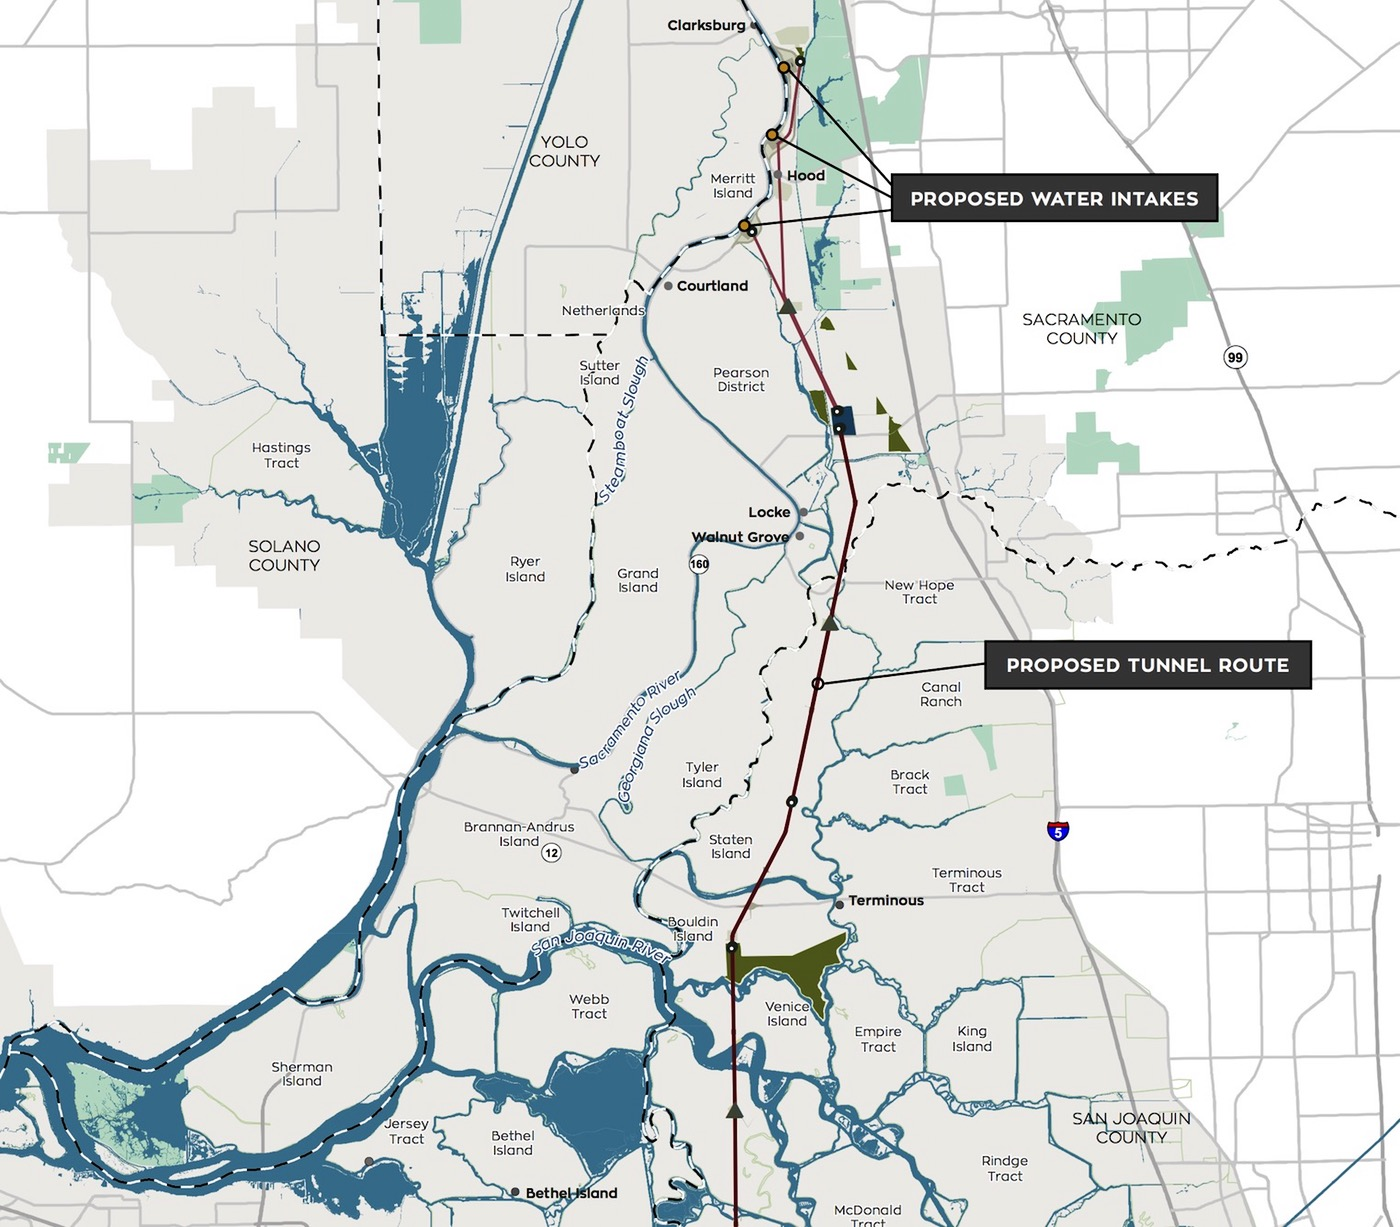 This map of the California WaterFix project shows part of the route for the proposed twin water diversion tunnels across the Sacramento-San Joaquin Delta, along with intakes and some other facilities.